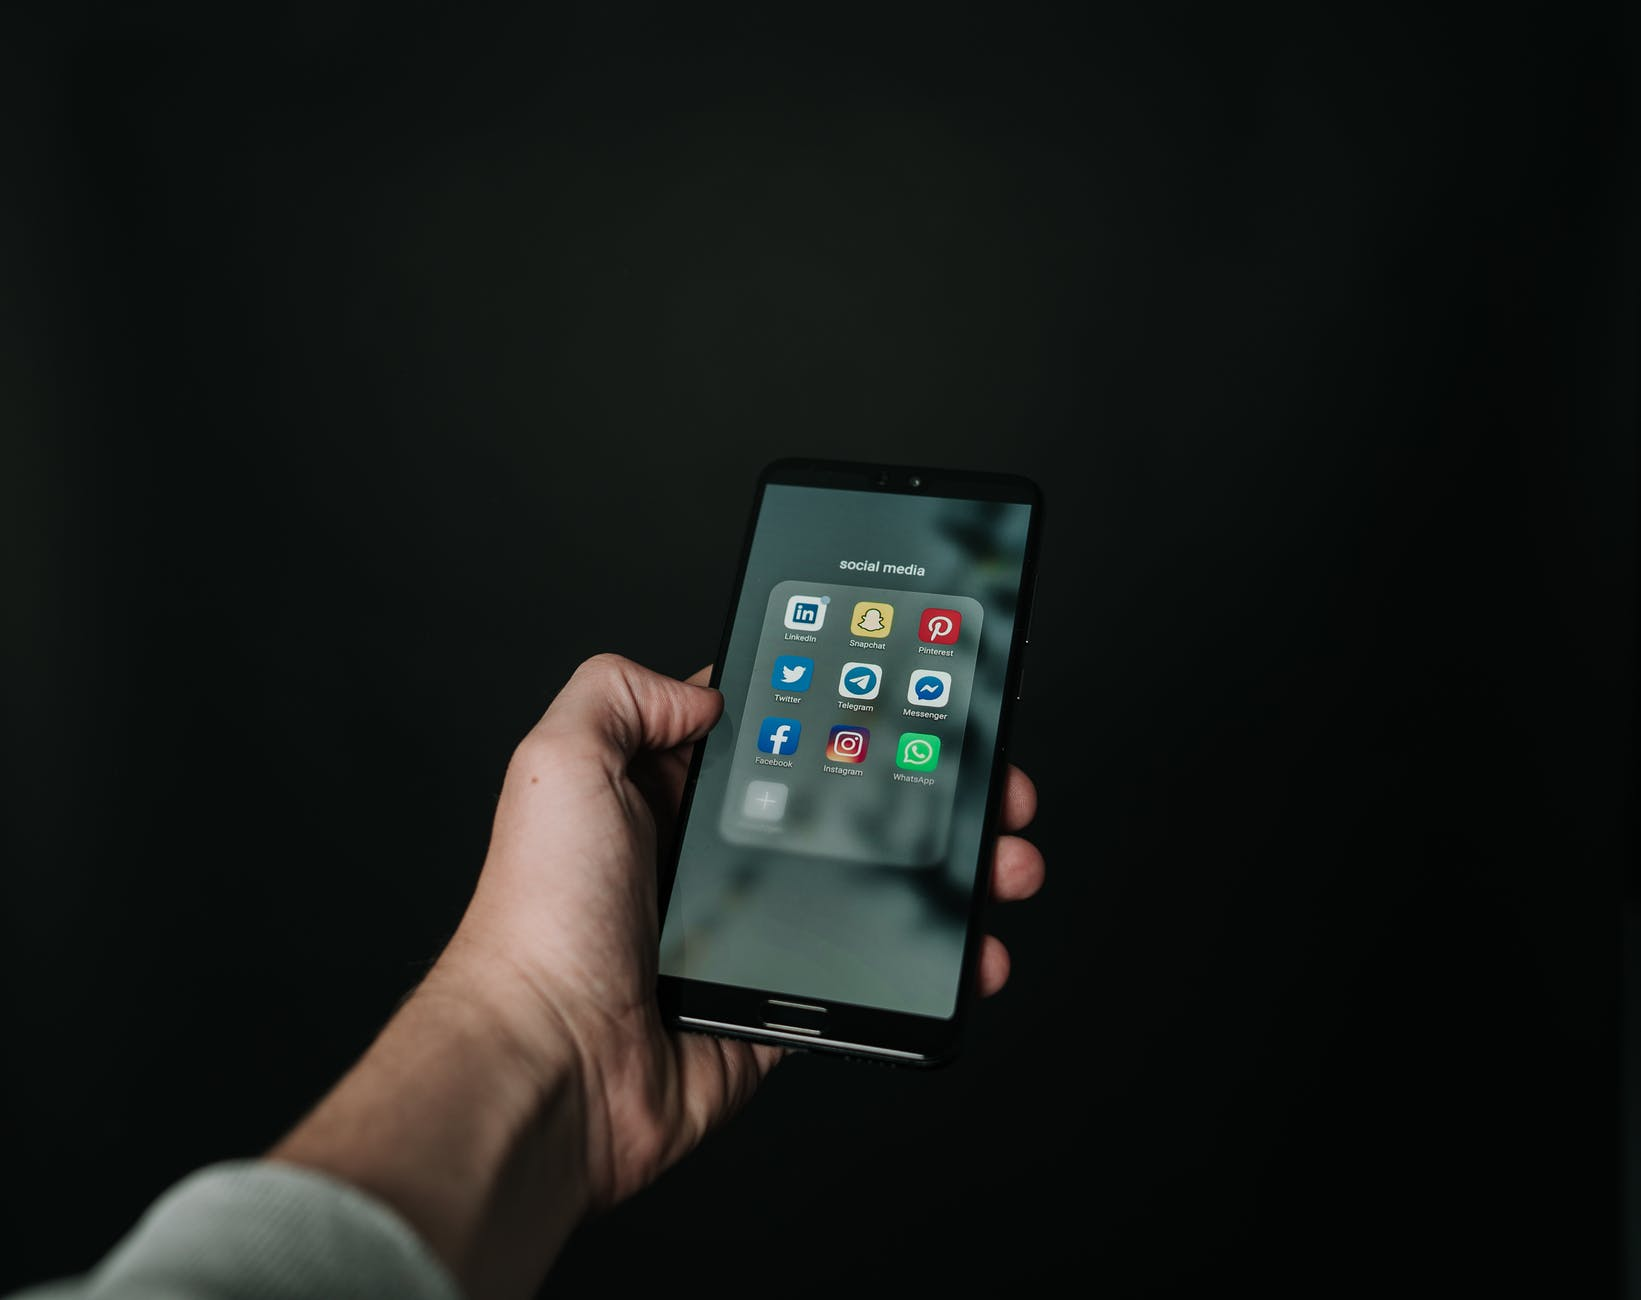 photo of hand holding a black smartphone